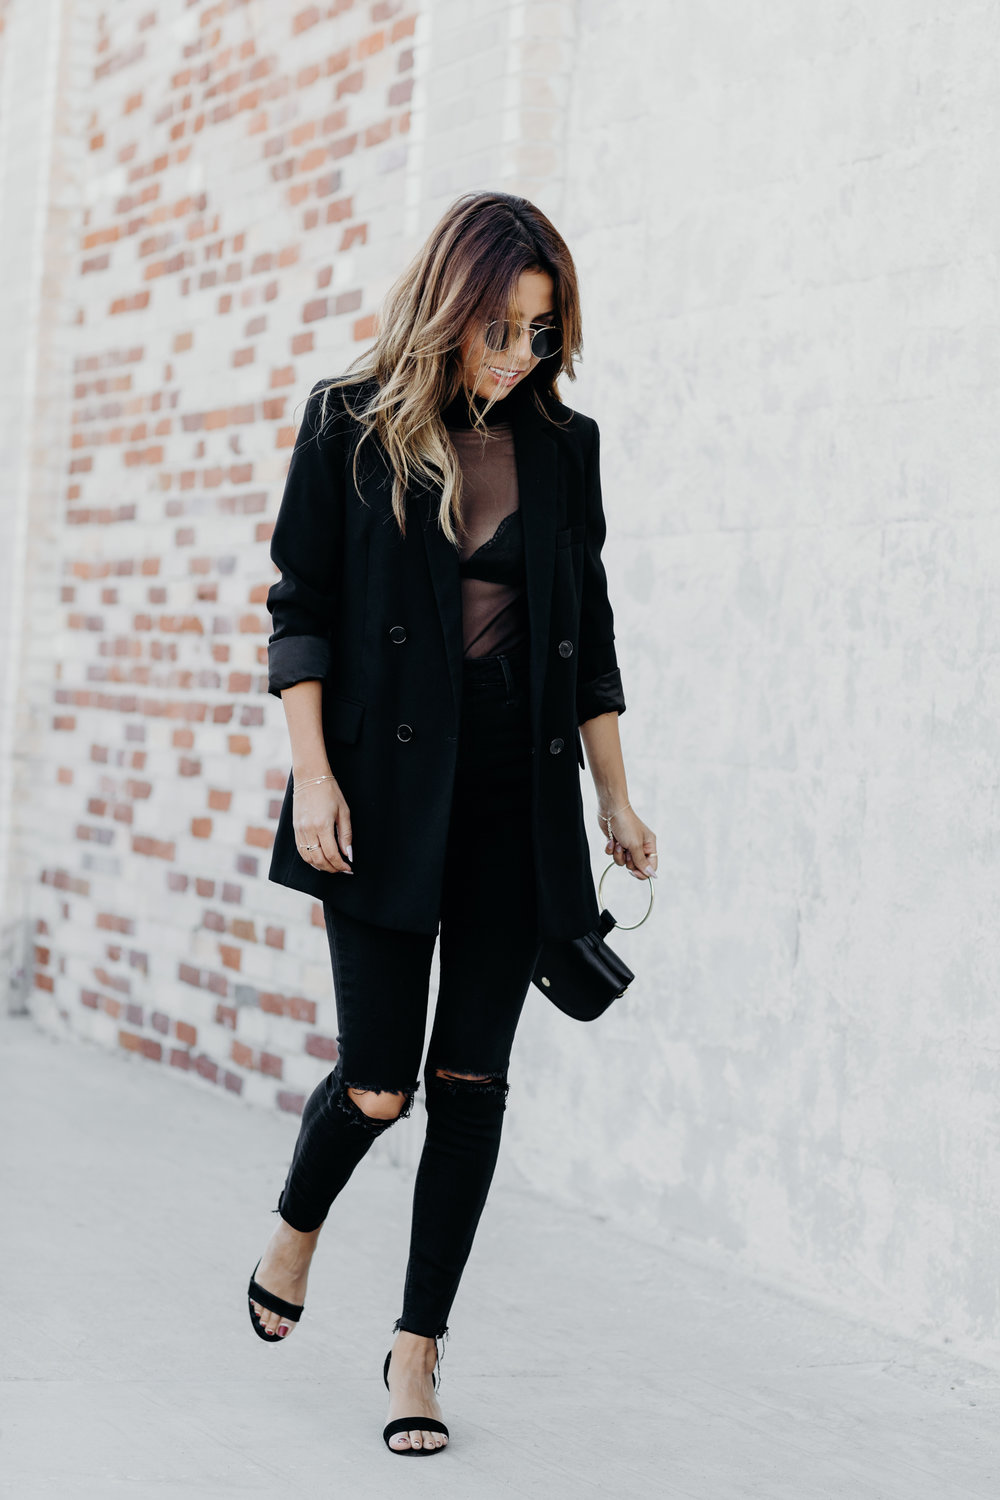 how to wear sheer tops, all black holiday outfit, simple zara look